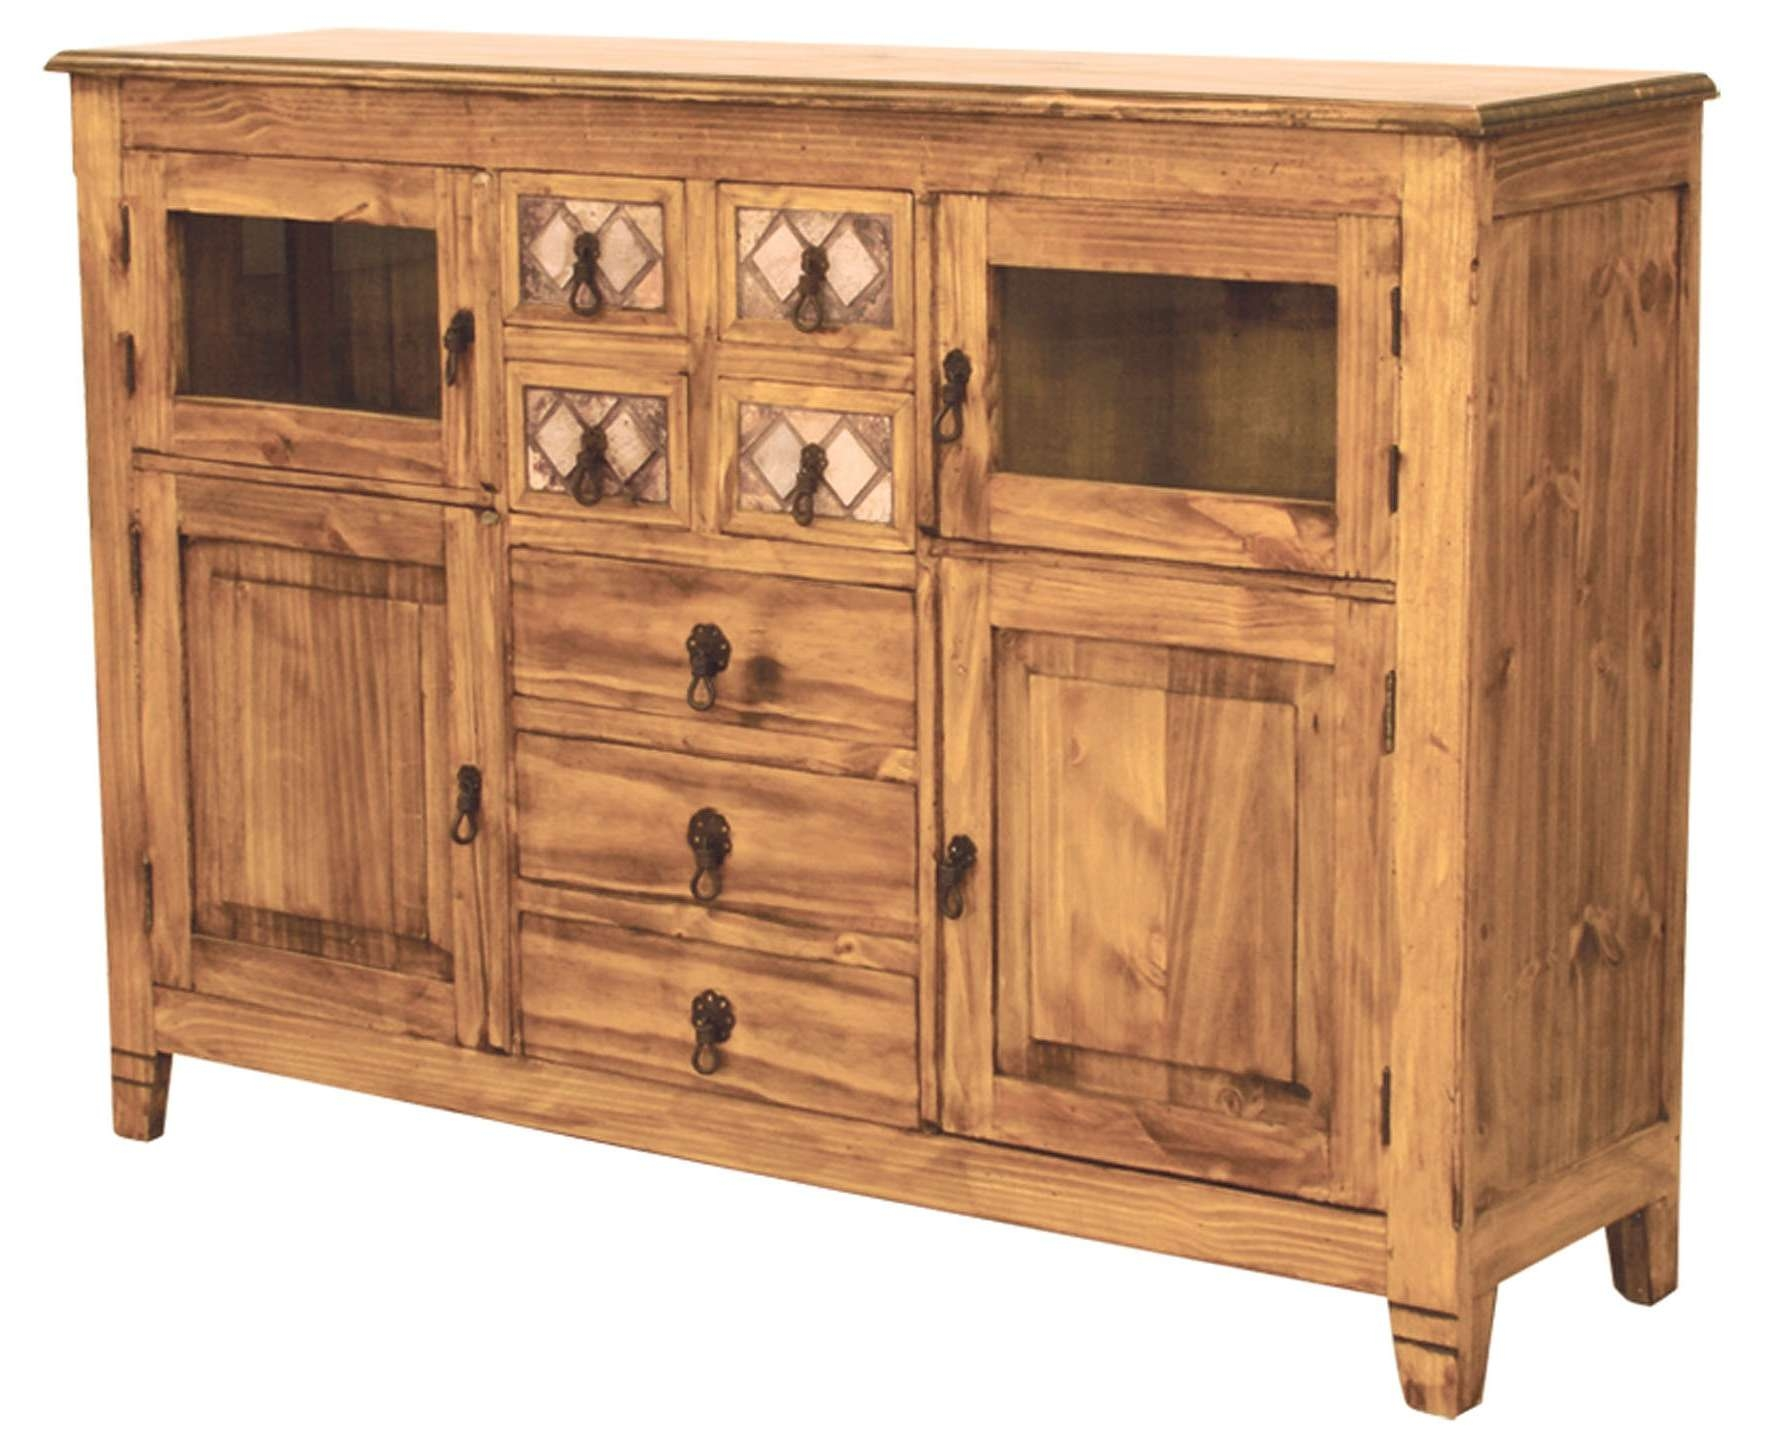 Marble And Pine Rustic Sideboard And Buffet Dining Furniture Intended For Rustic Sideboards And Buffets (View 16 of 20)